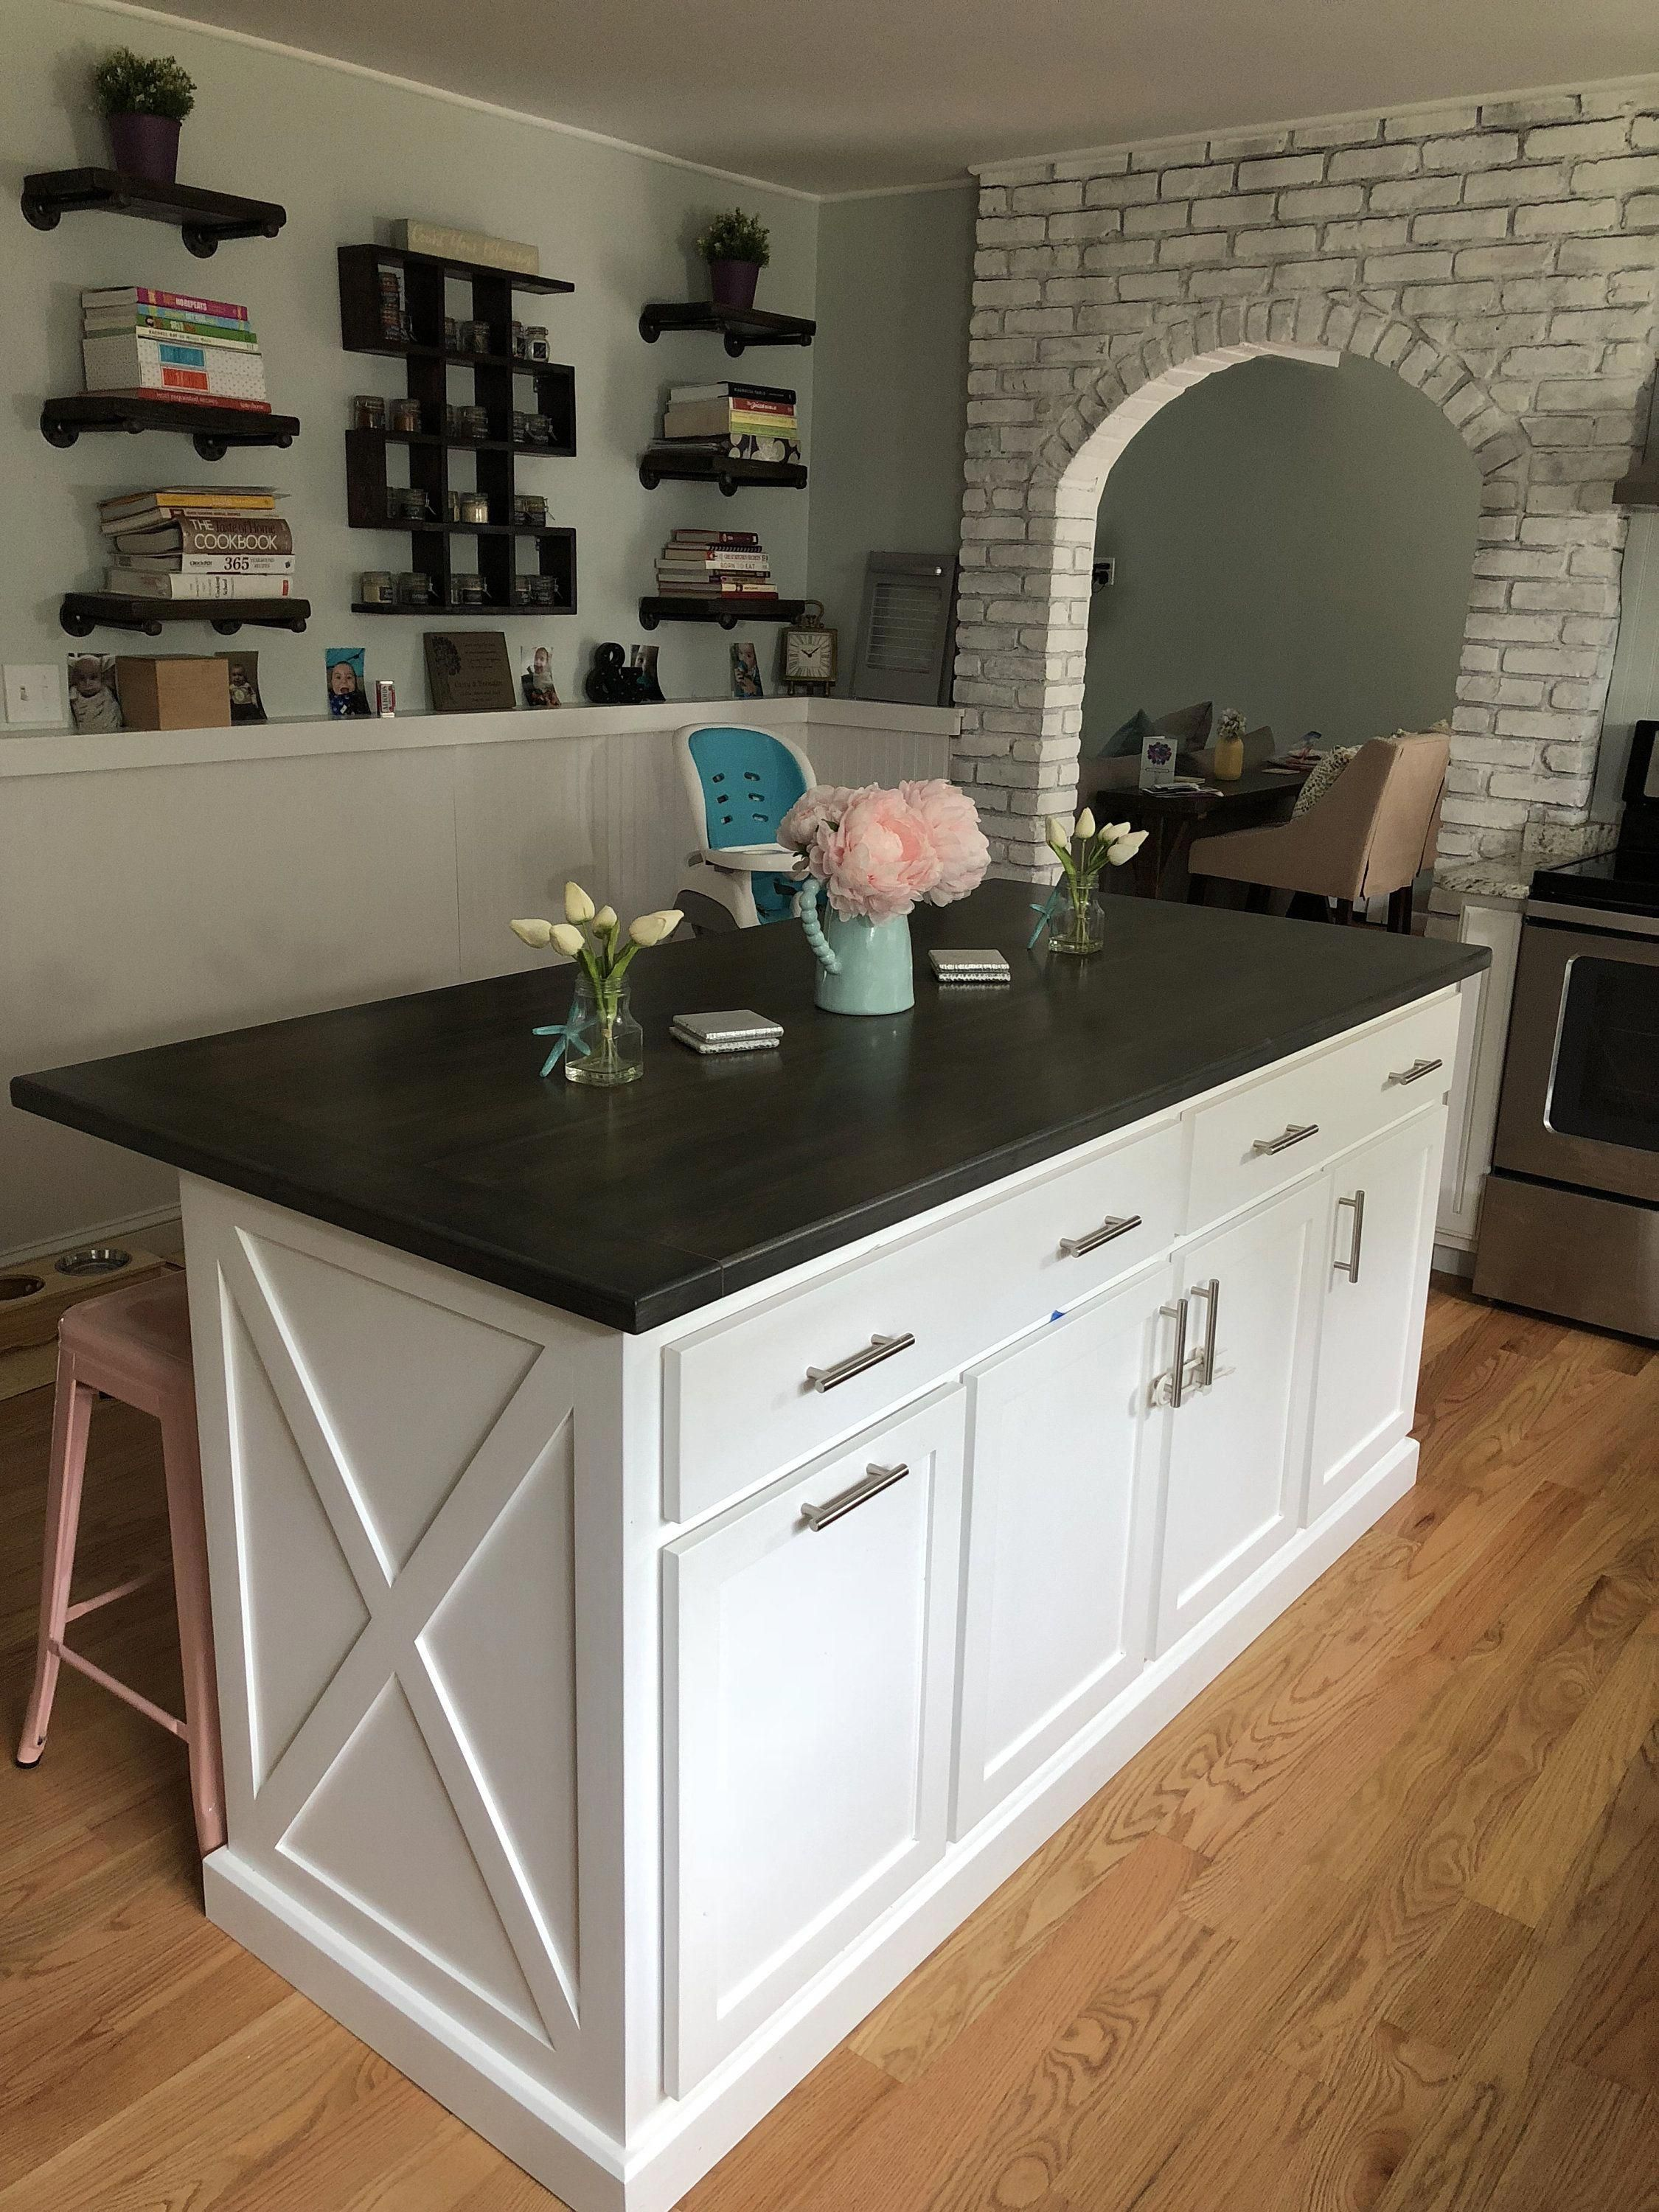 kitchen island with seating by worthysrunfurniture on etsy diykitchencountertops in 2020 on kitchen island id=99118